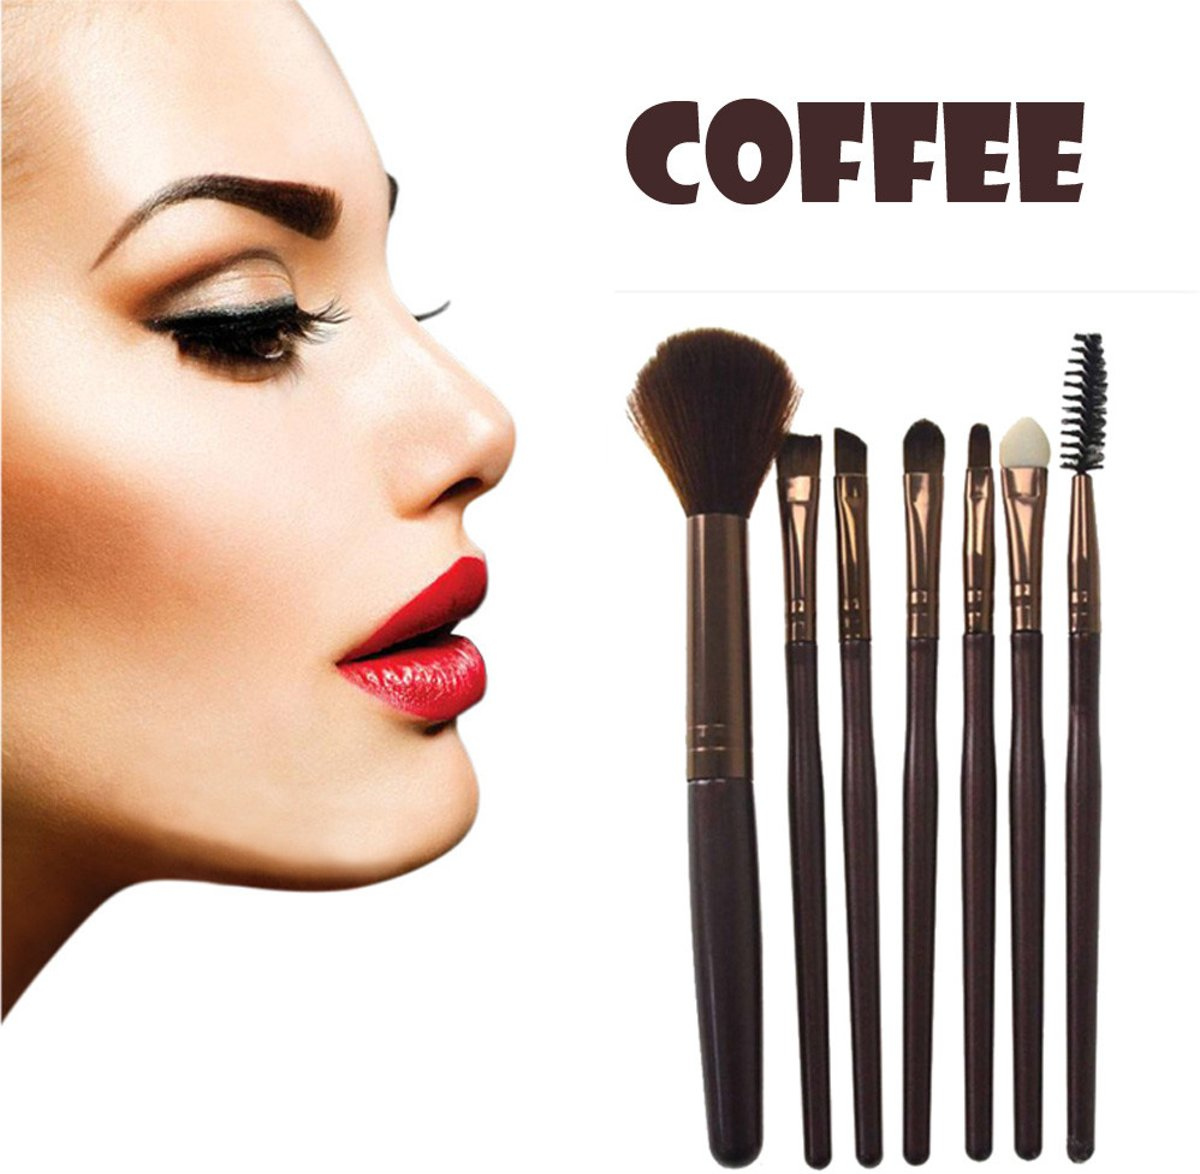 7 delig Make up set / Kwastenset / Kwasten / Brush / Wenkbrouwen